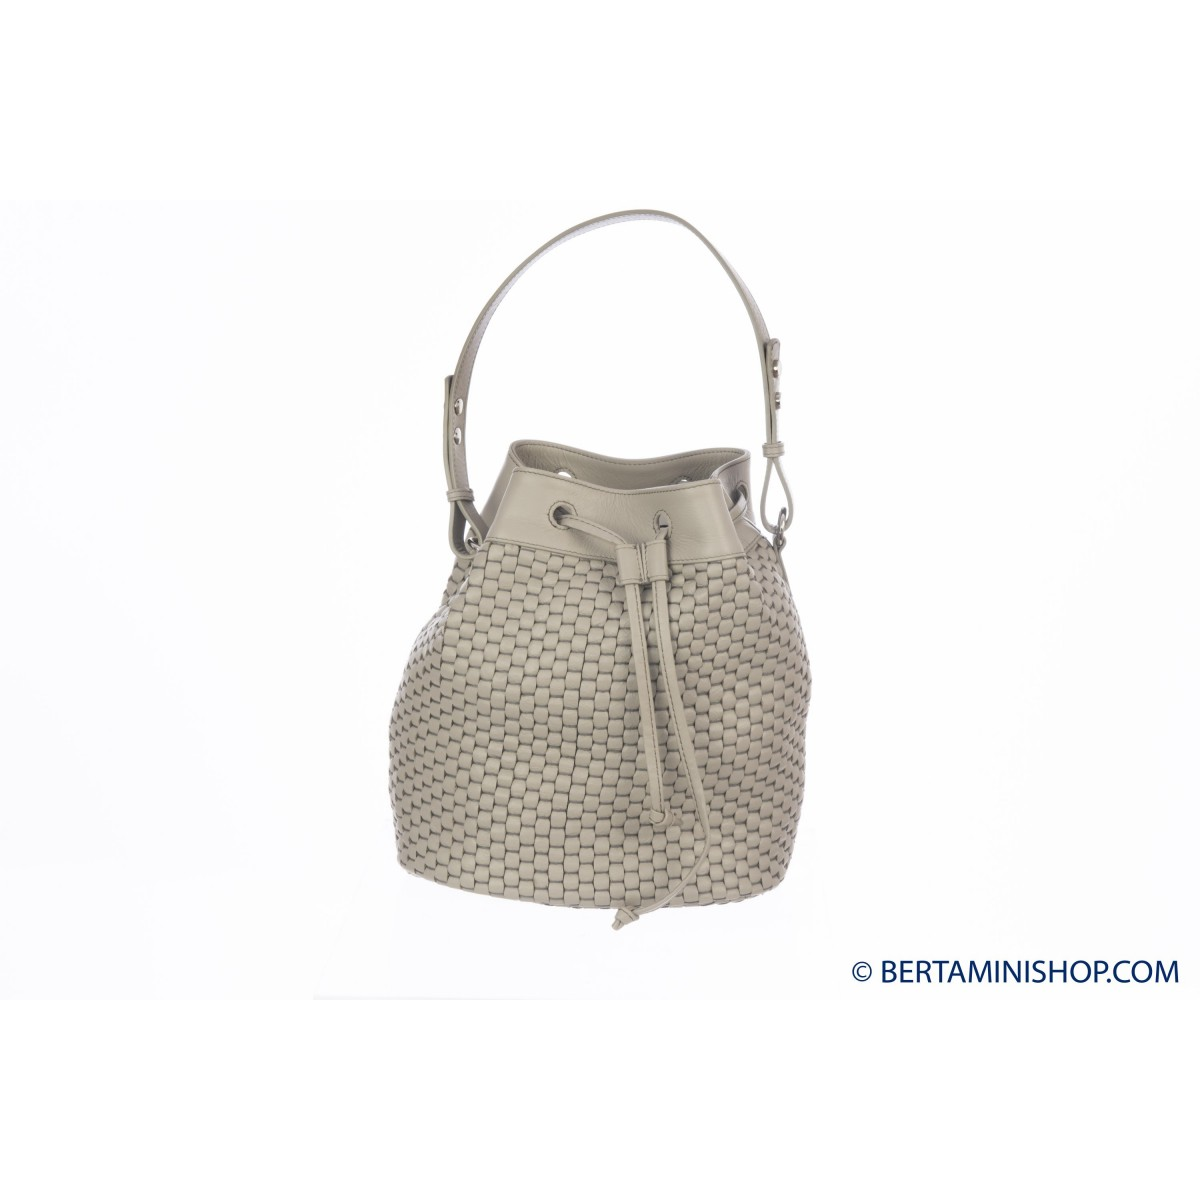 Borsa Bruno parise italia - Dolly